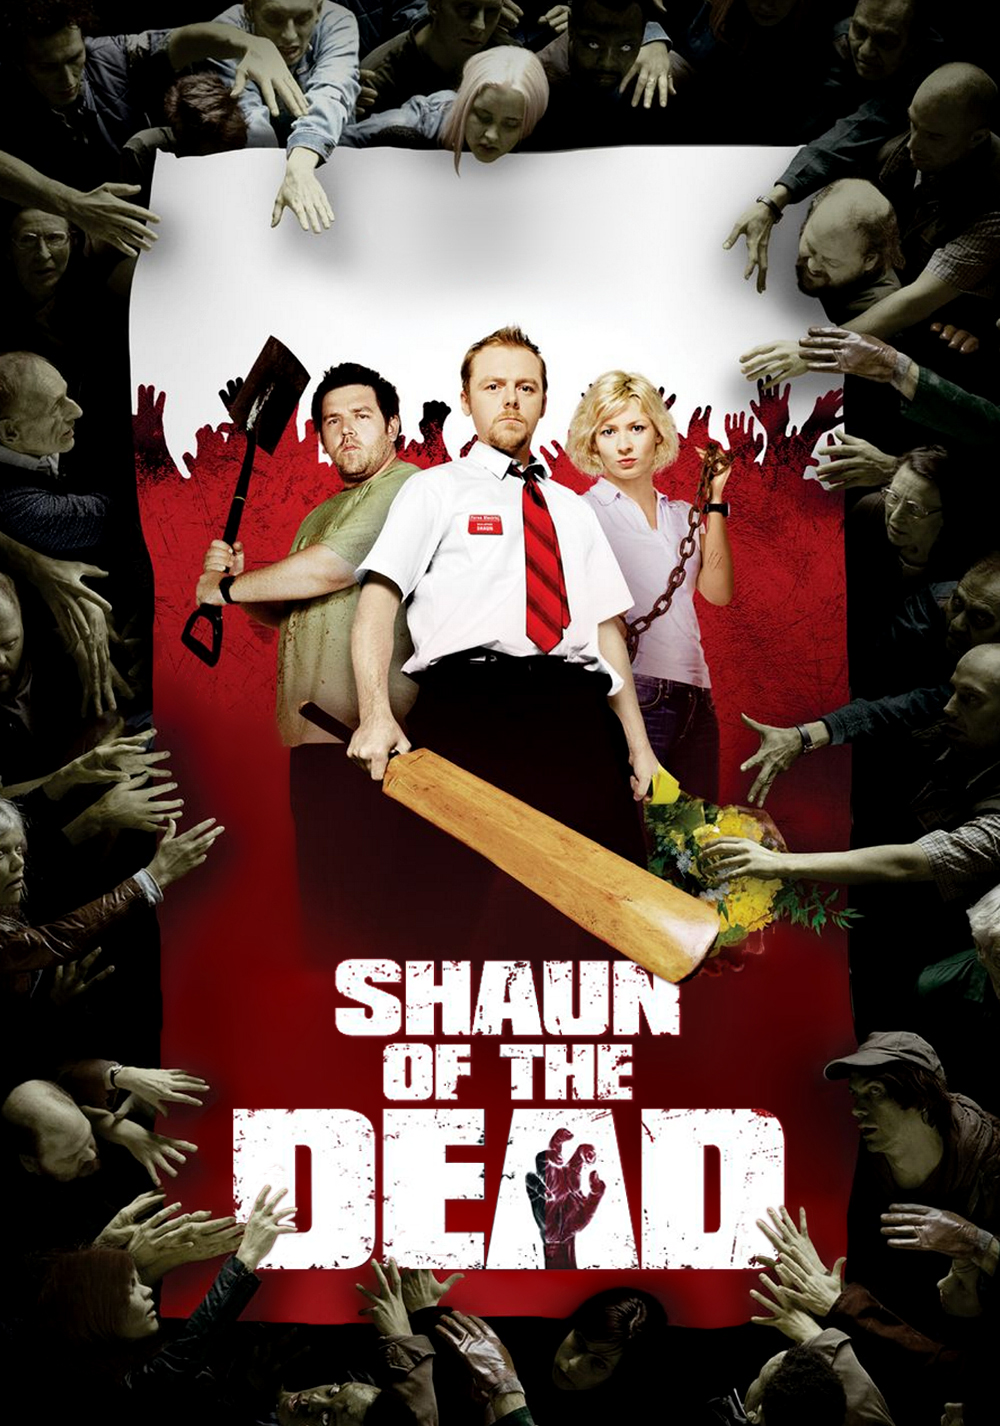 shaun-of-the-dead-53e28c178922c